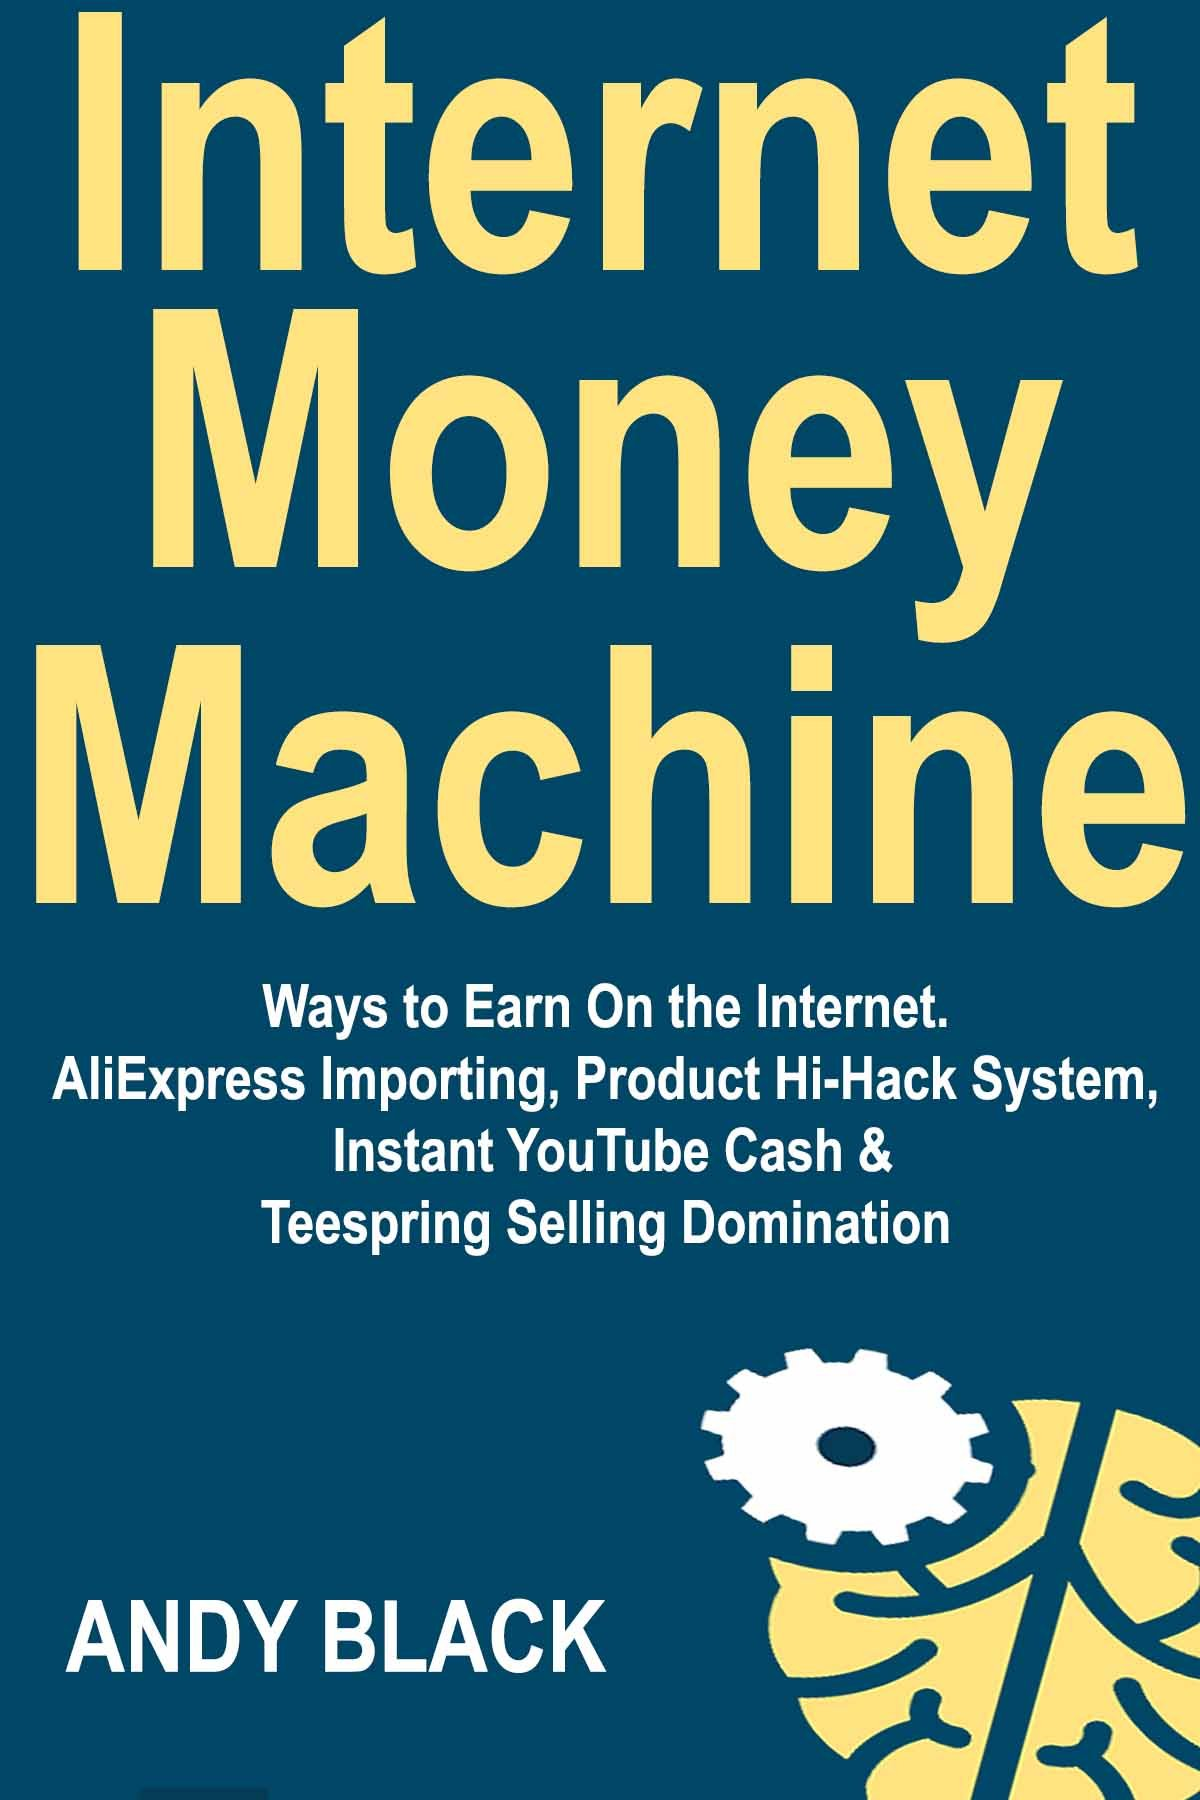 Internet Money Machine: Ways to Earn On the Internet. AliExpress Importing, Product Hi-Hack System, Instant YouTube Cash & Teespring Selling Domination